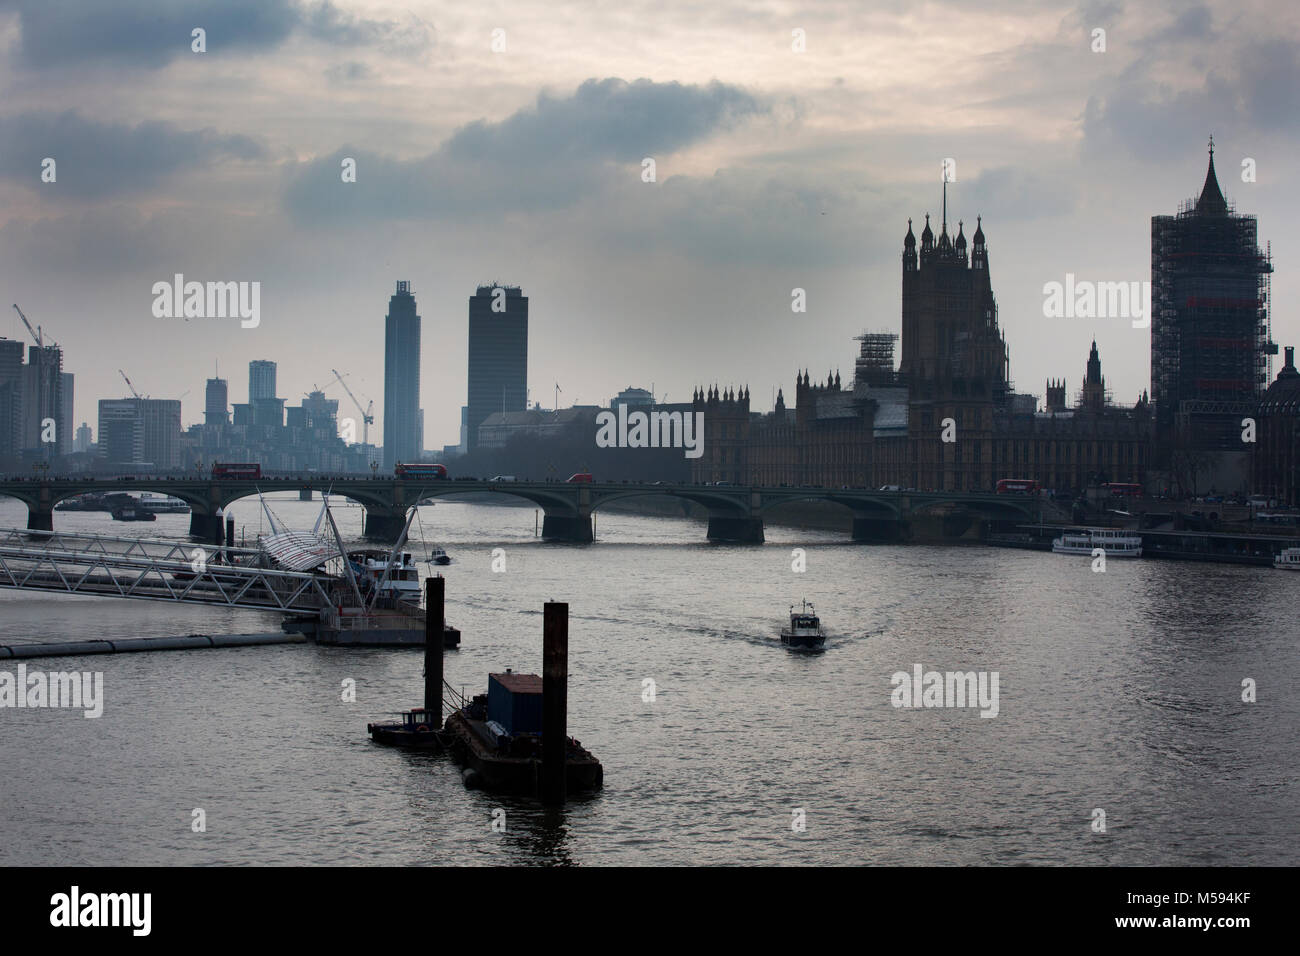 View westwards towards Houses of Parliament along the River Thames from Waterloo Bridge, London, United Kingdom - Stock Image